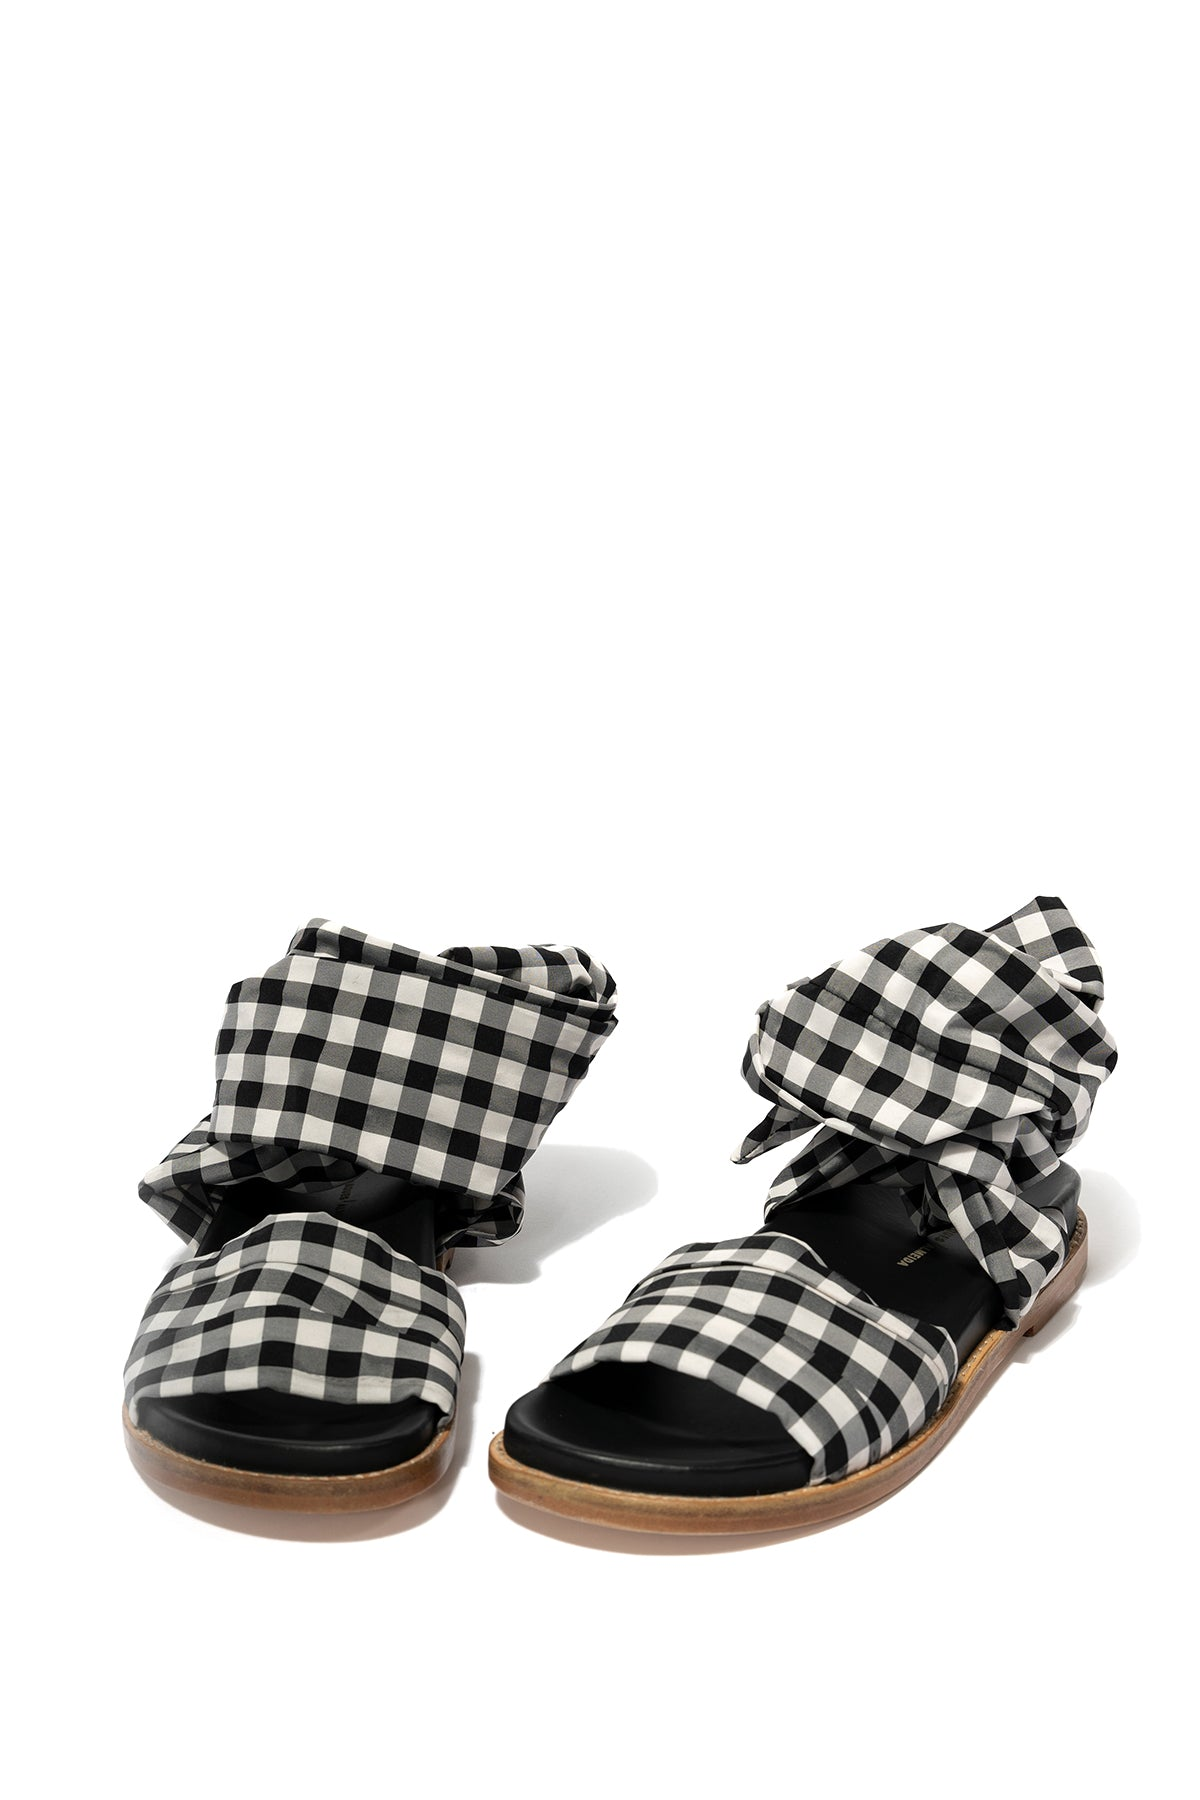 MARQUES ALMEIDA BLACK GINGHAM WRAP SANDAL